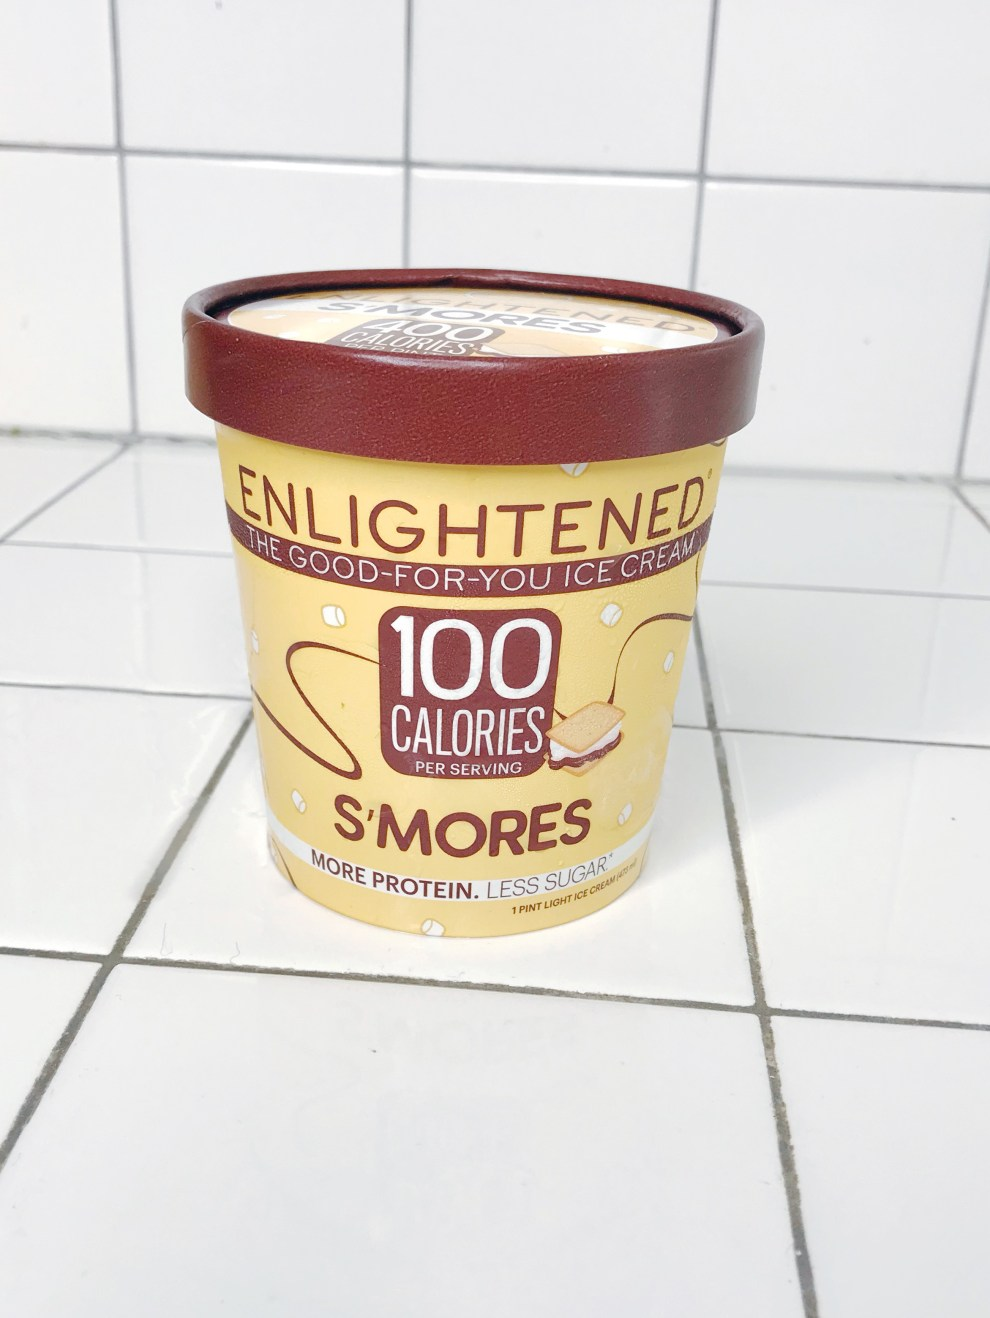 enlightened s'mores